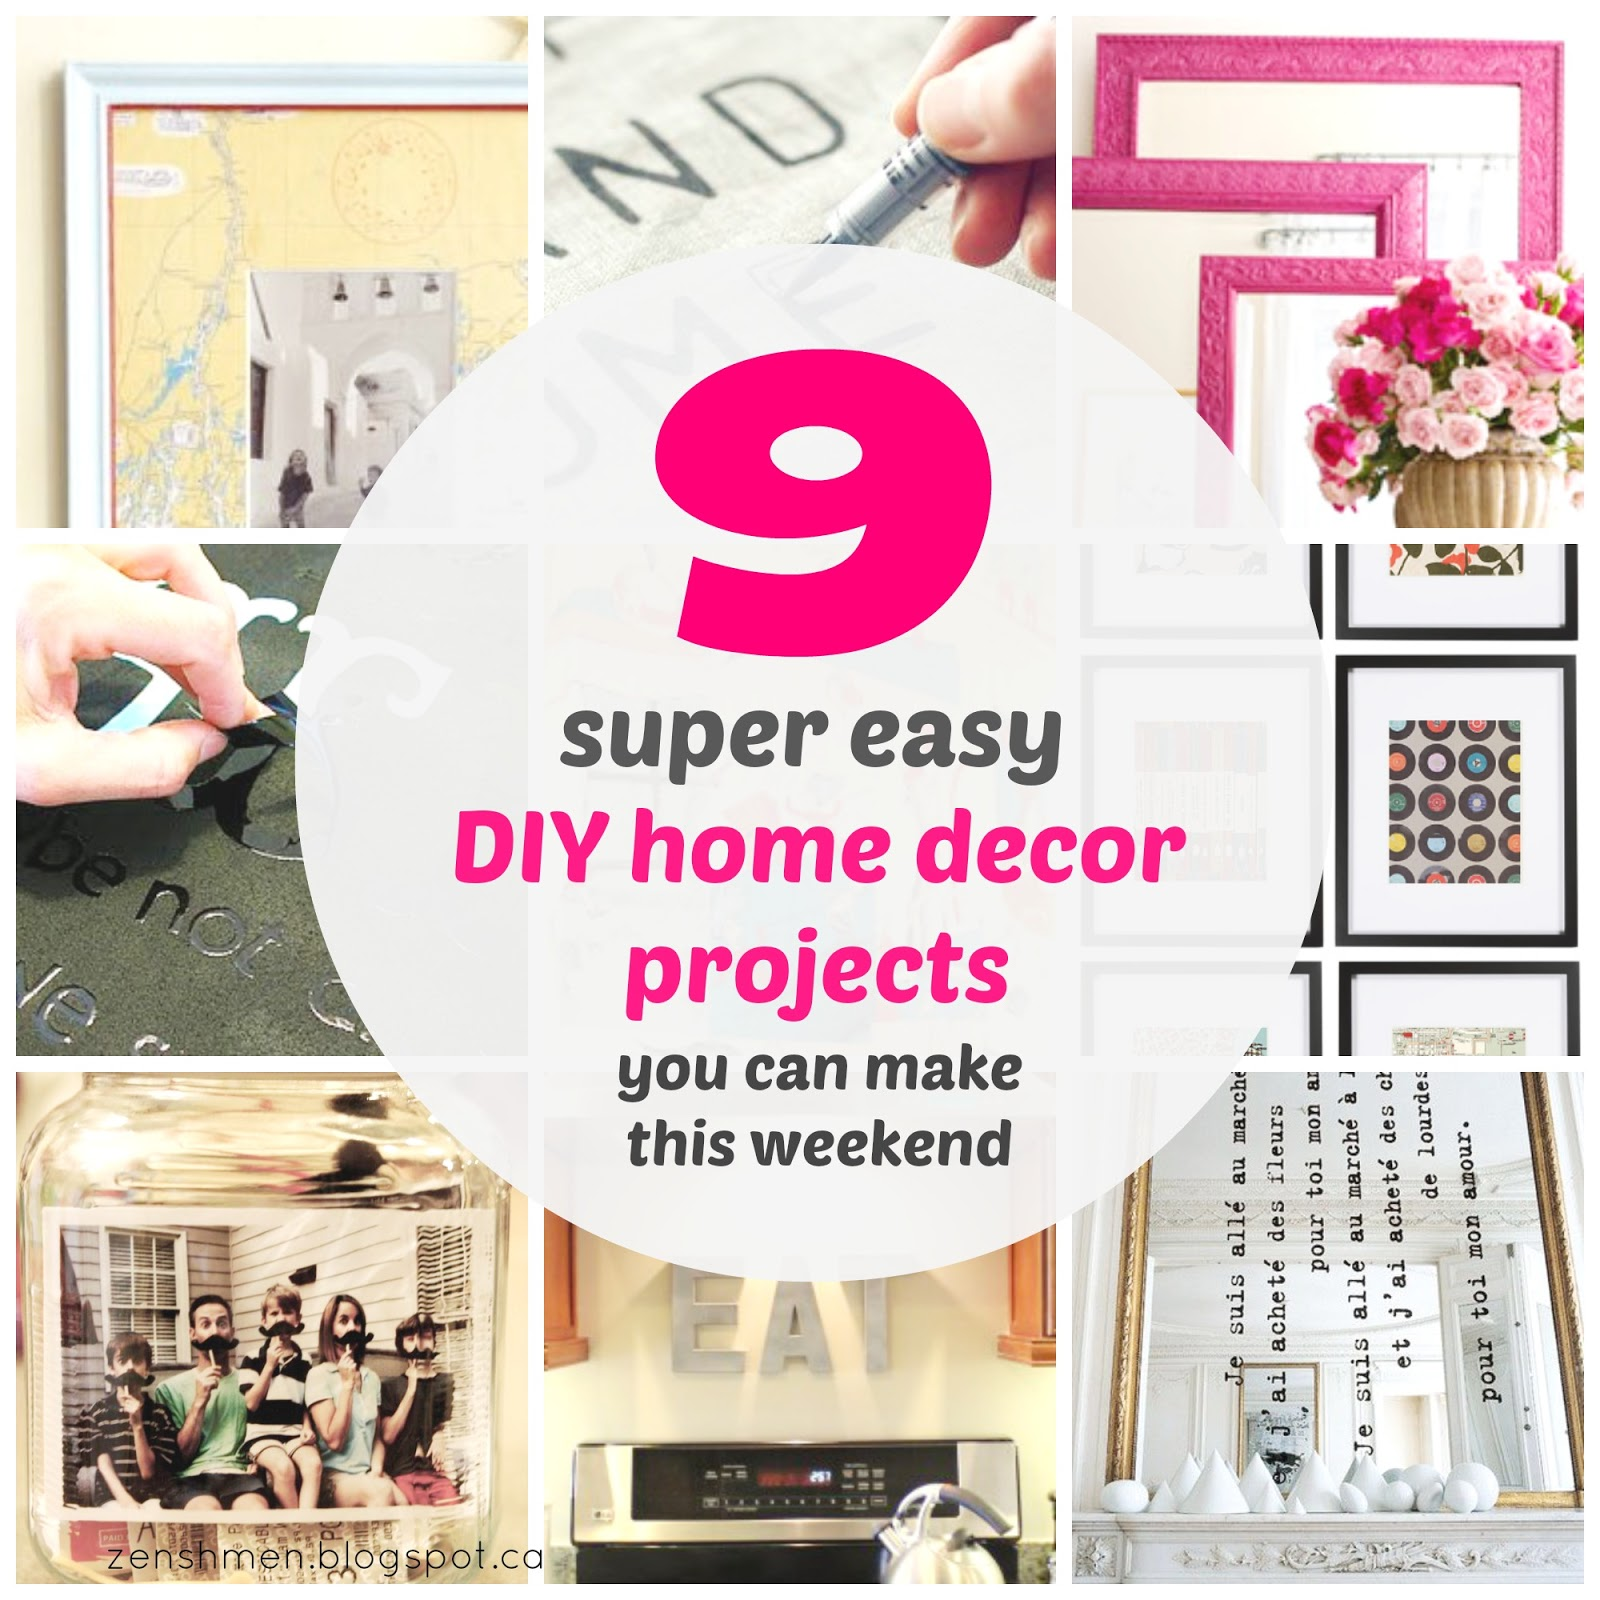 Zen shmen 9 super easy diy home decor projects you can make this weekend Diy home decor crafts pinterest